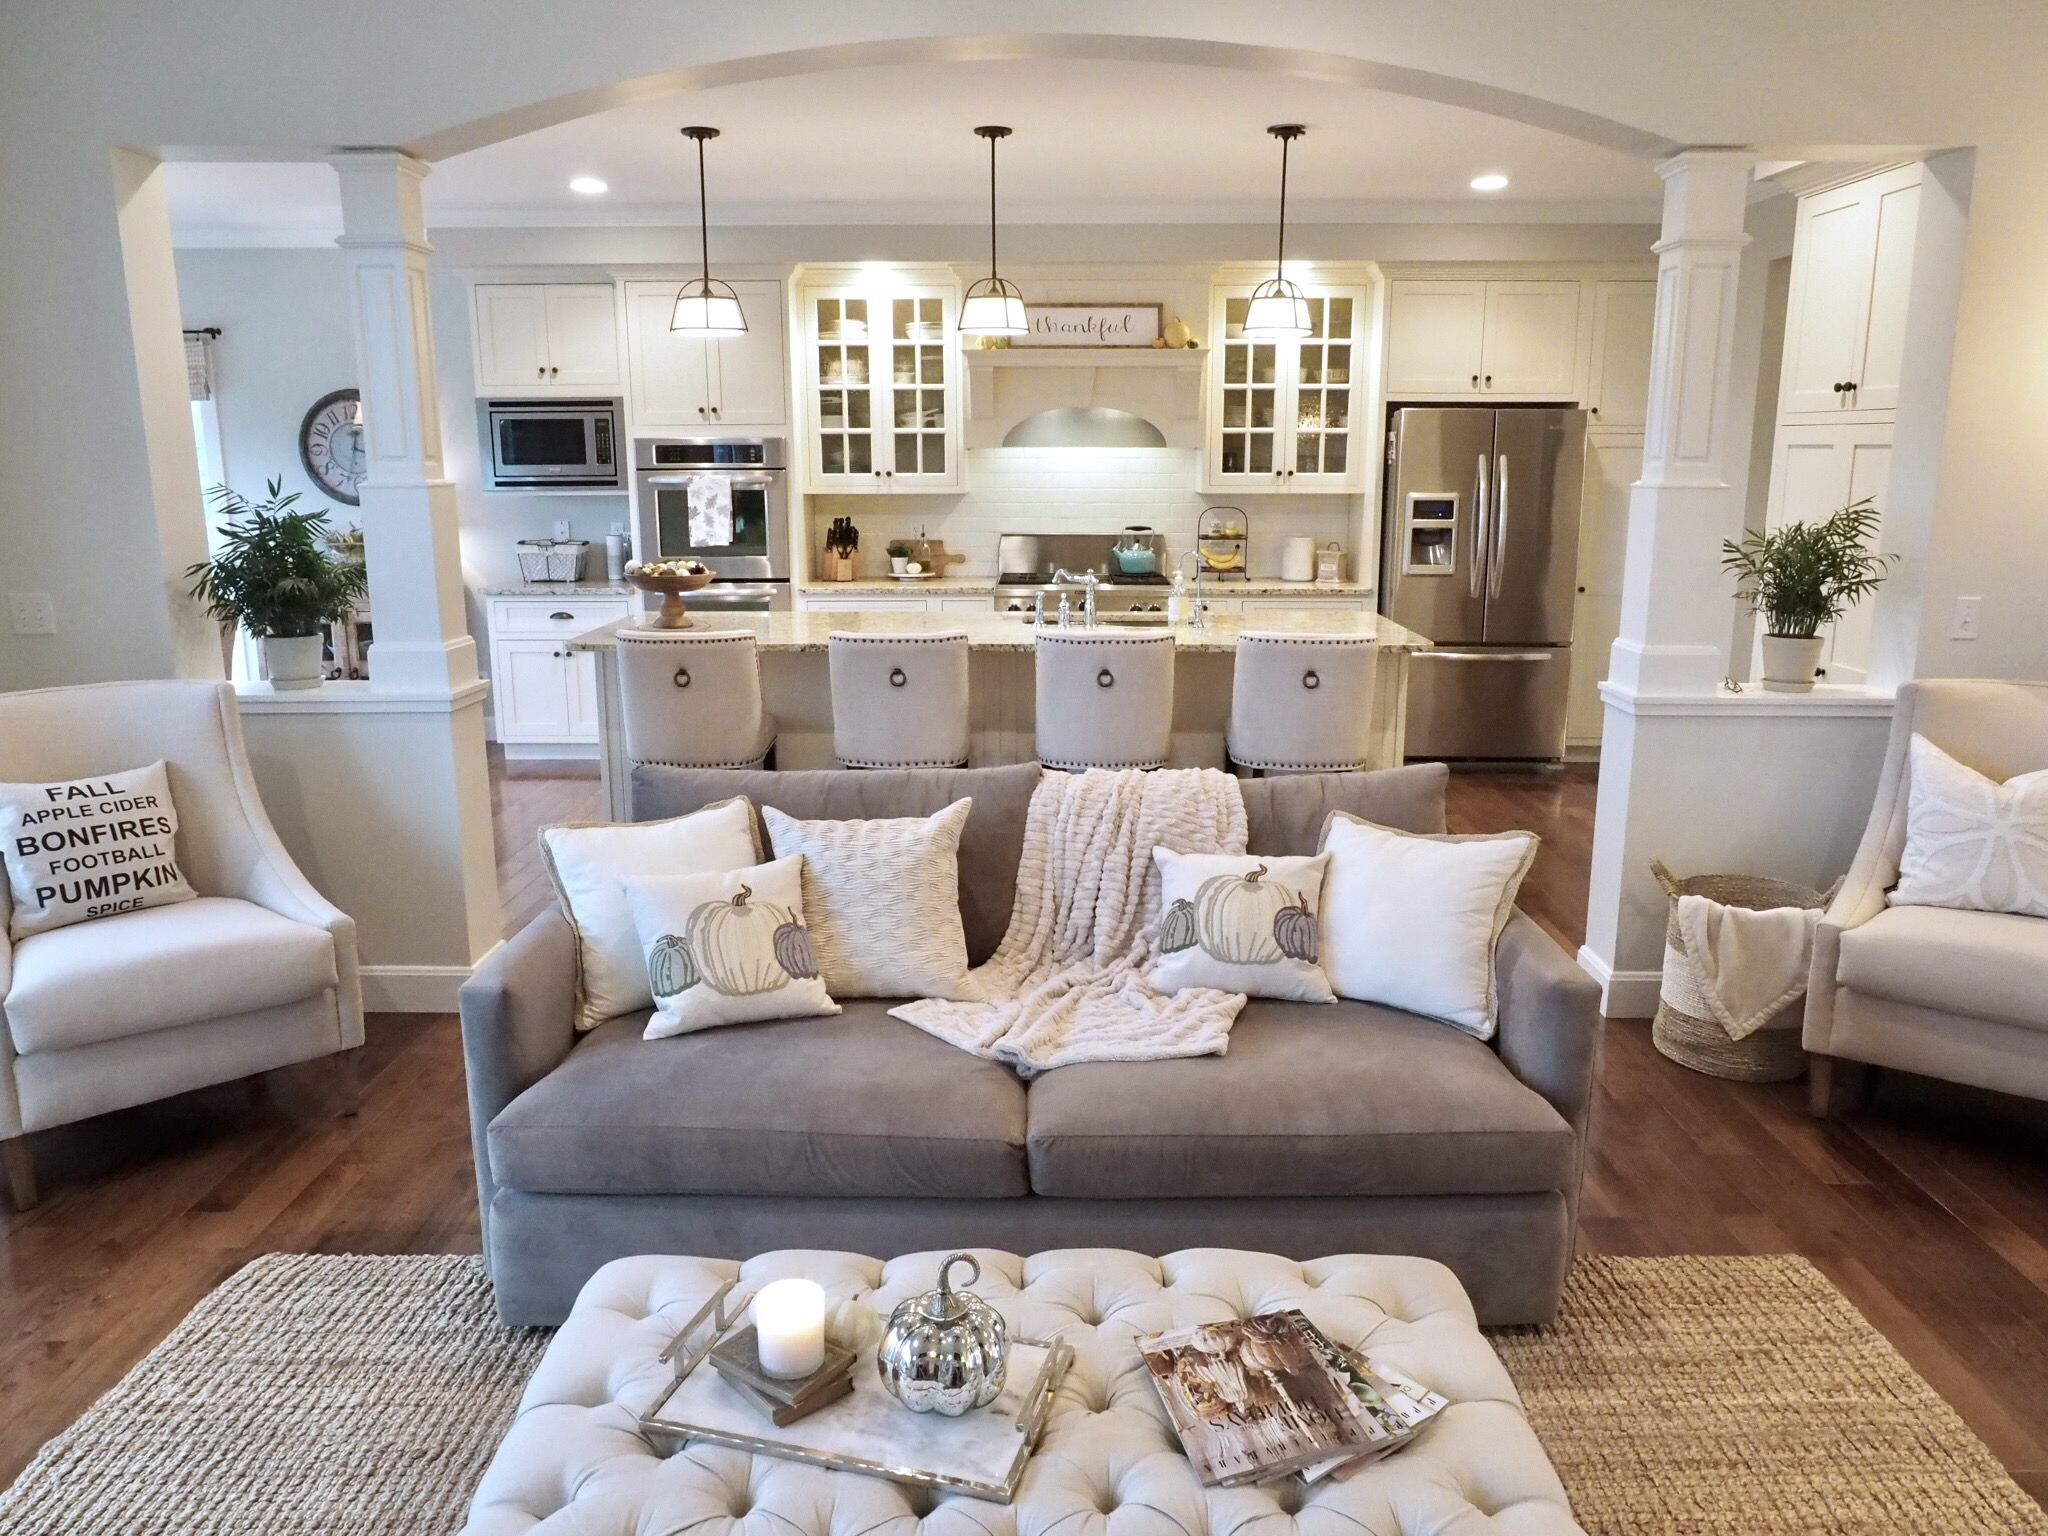 Perfect Open Floor Plan Family Room Ideas And Description In 2020 Open Concept Living Room Living Room Floor Plans Open Concept Kitchen Living Room